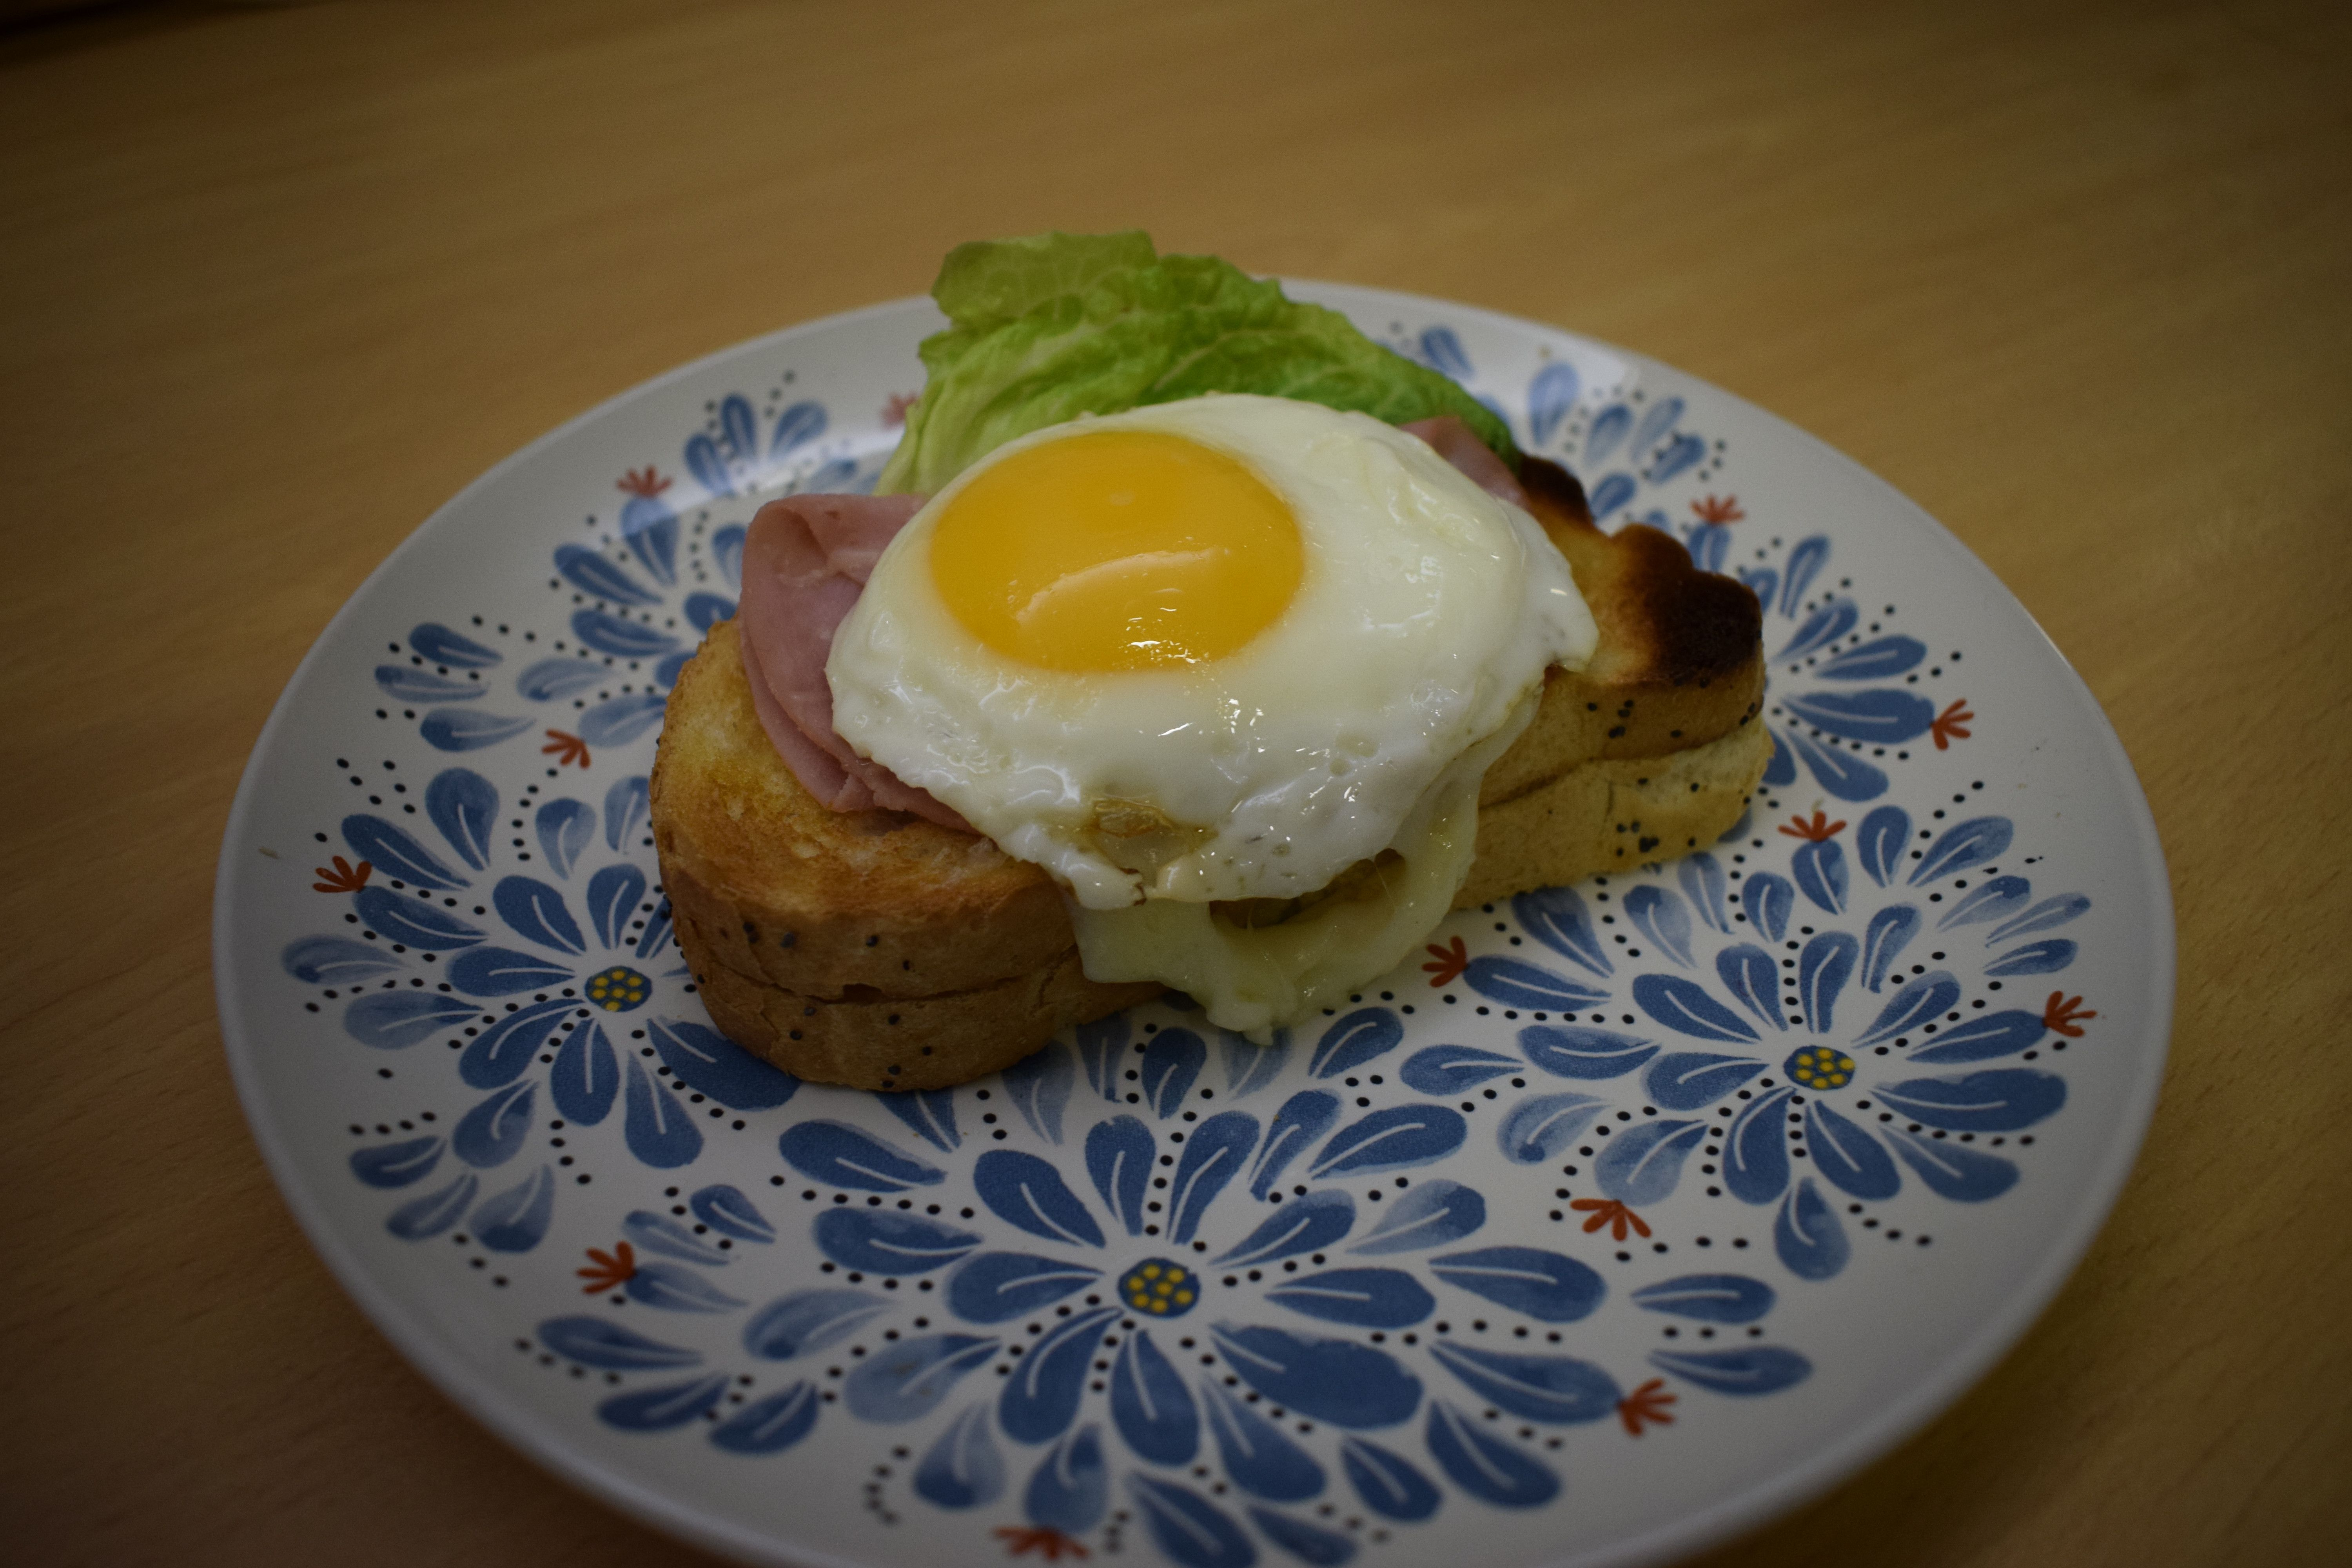 Ffxv Cooking Recipe Croque Madame From Tropicnights Reddit